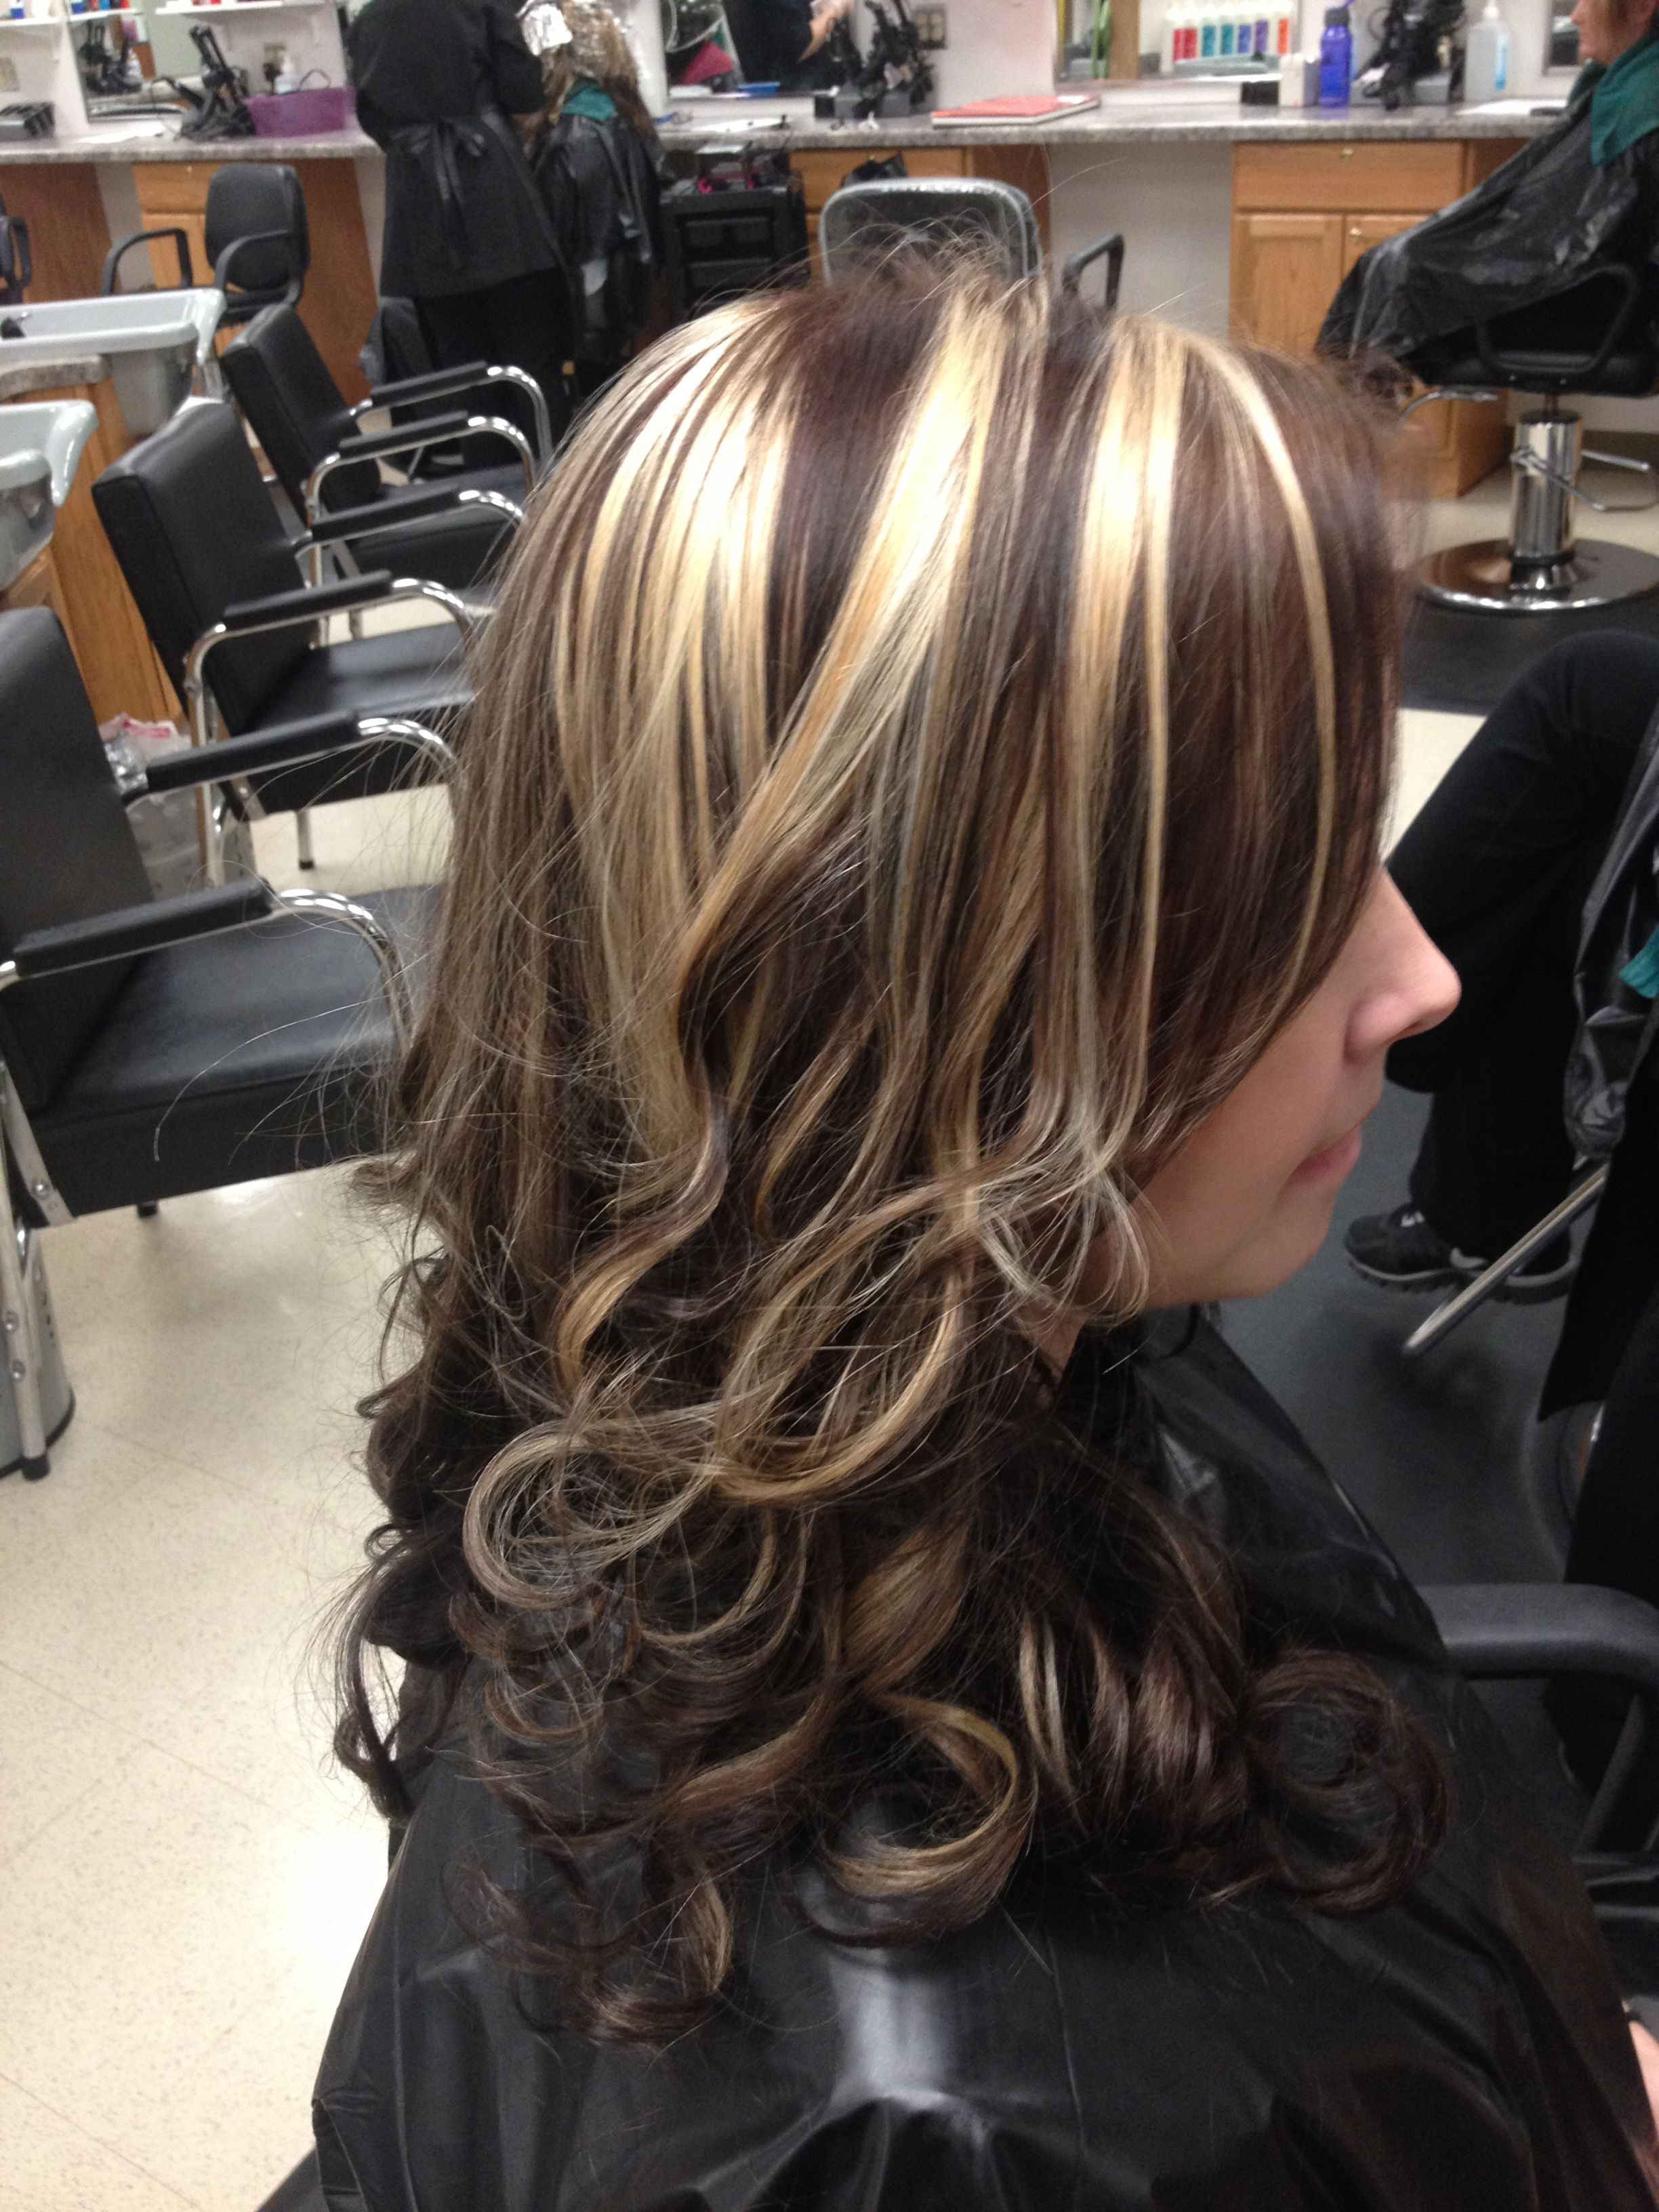 This Is Called Chunky Blonde Highlights I Want This Soo